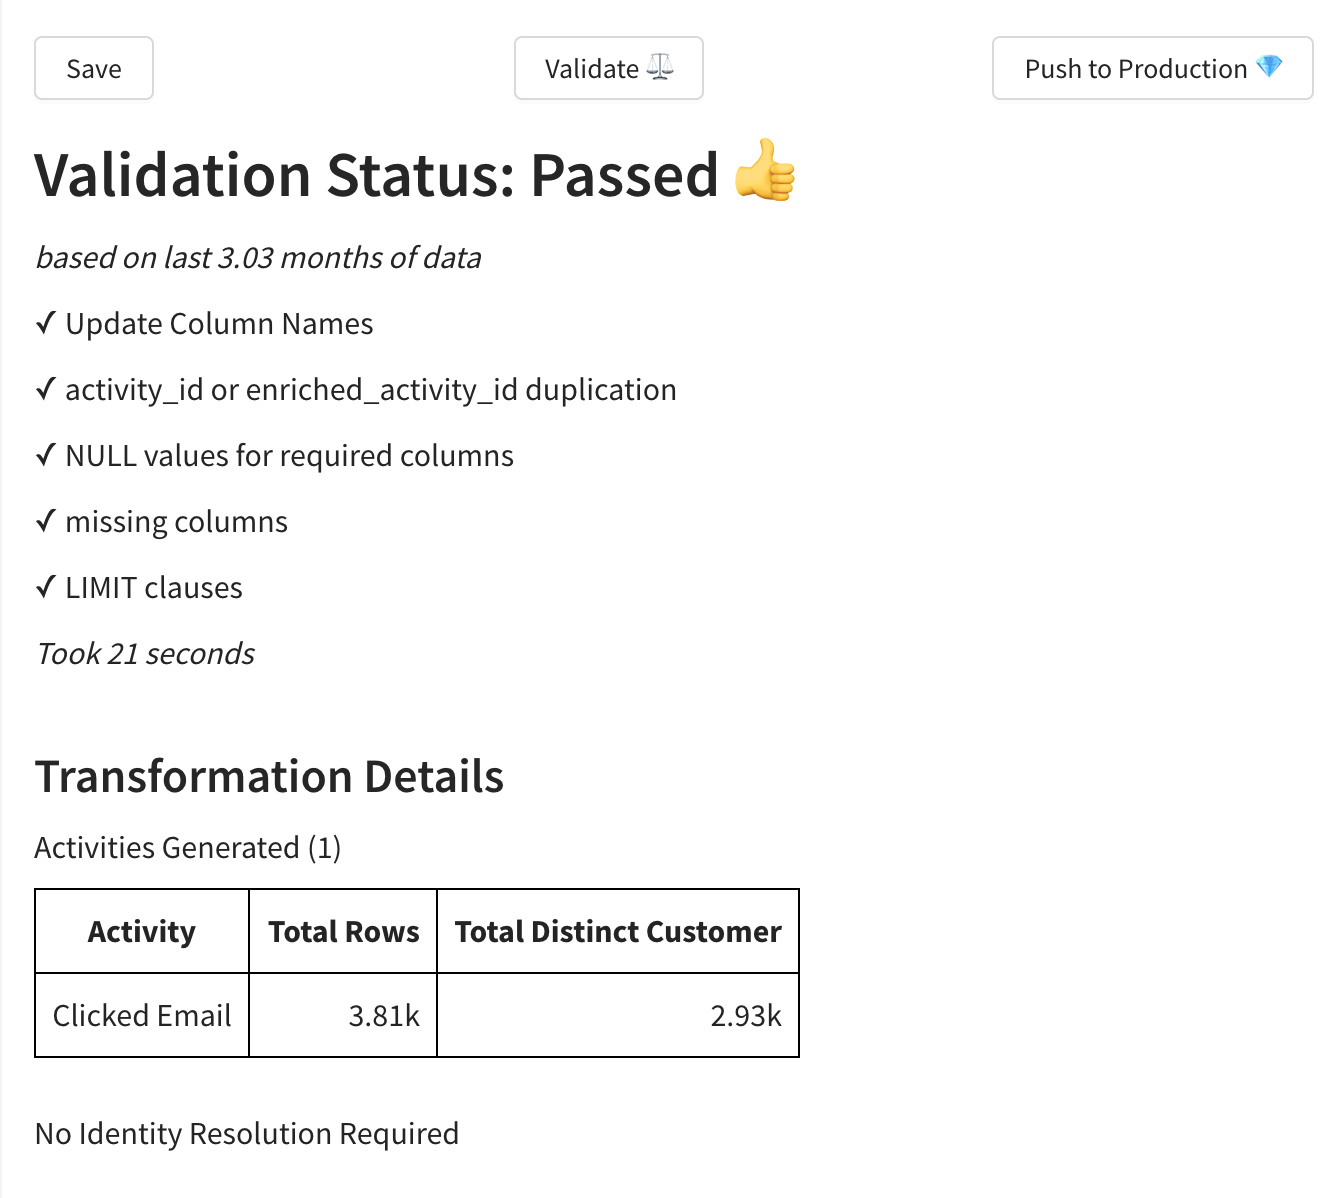 Successful Validation for an Activity Transformation